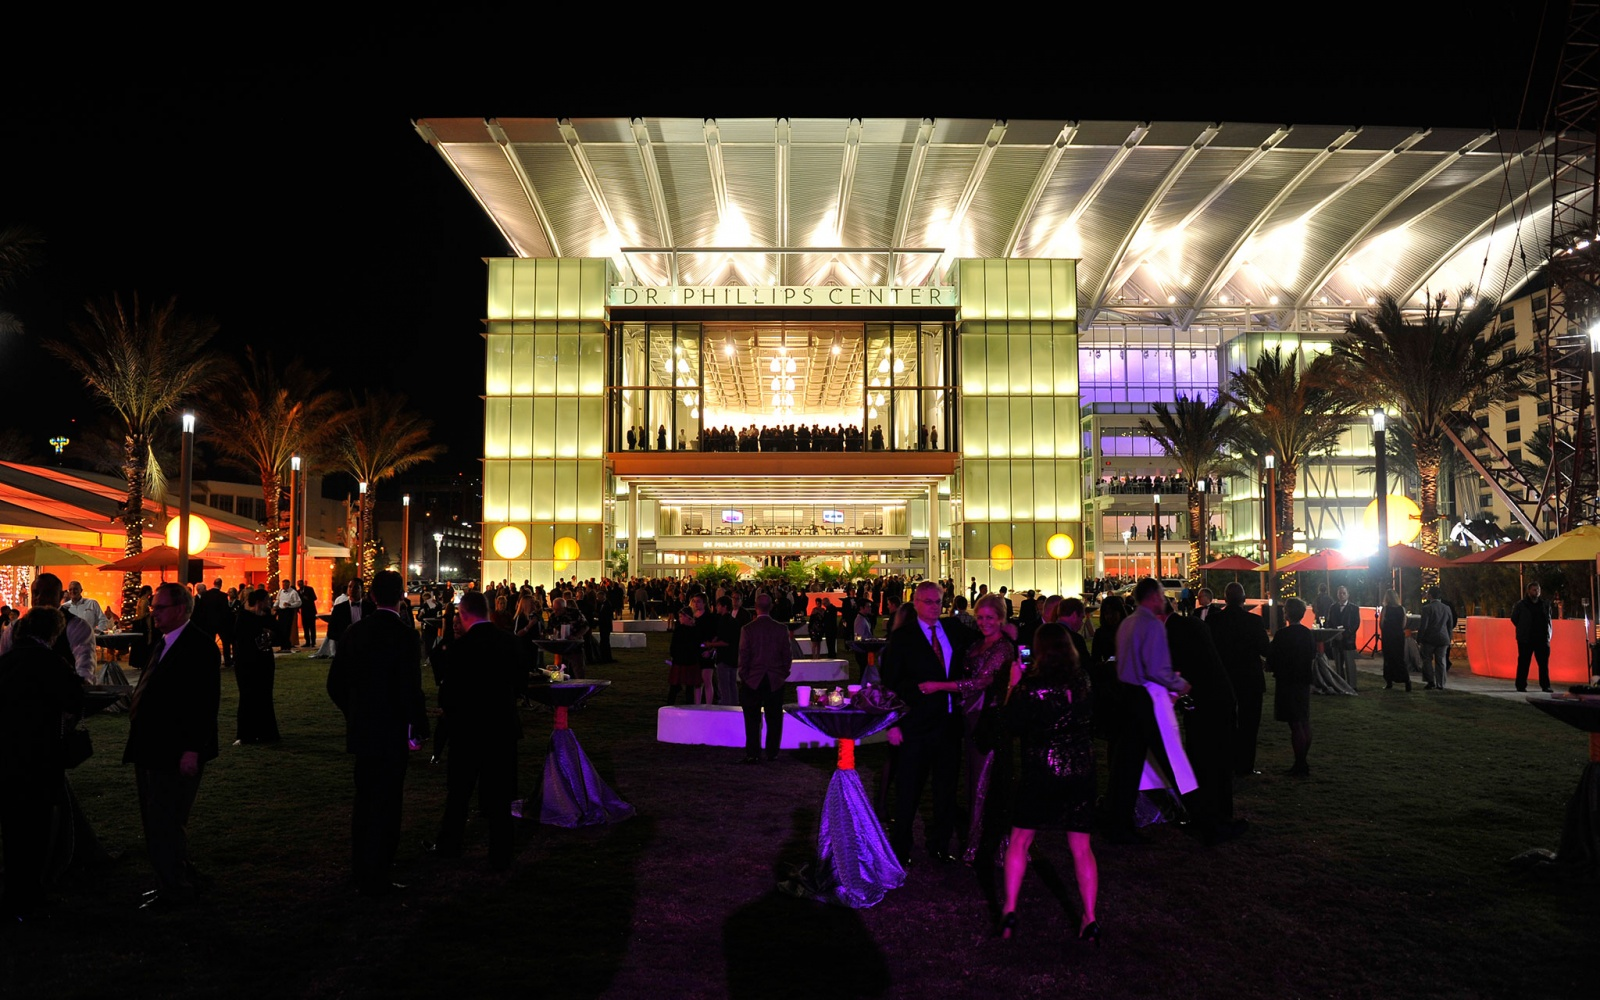 Dr. Phillips Center for the Performing Arts, Orlando